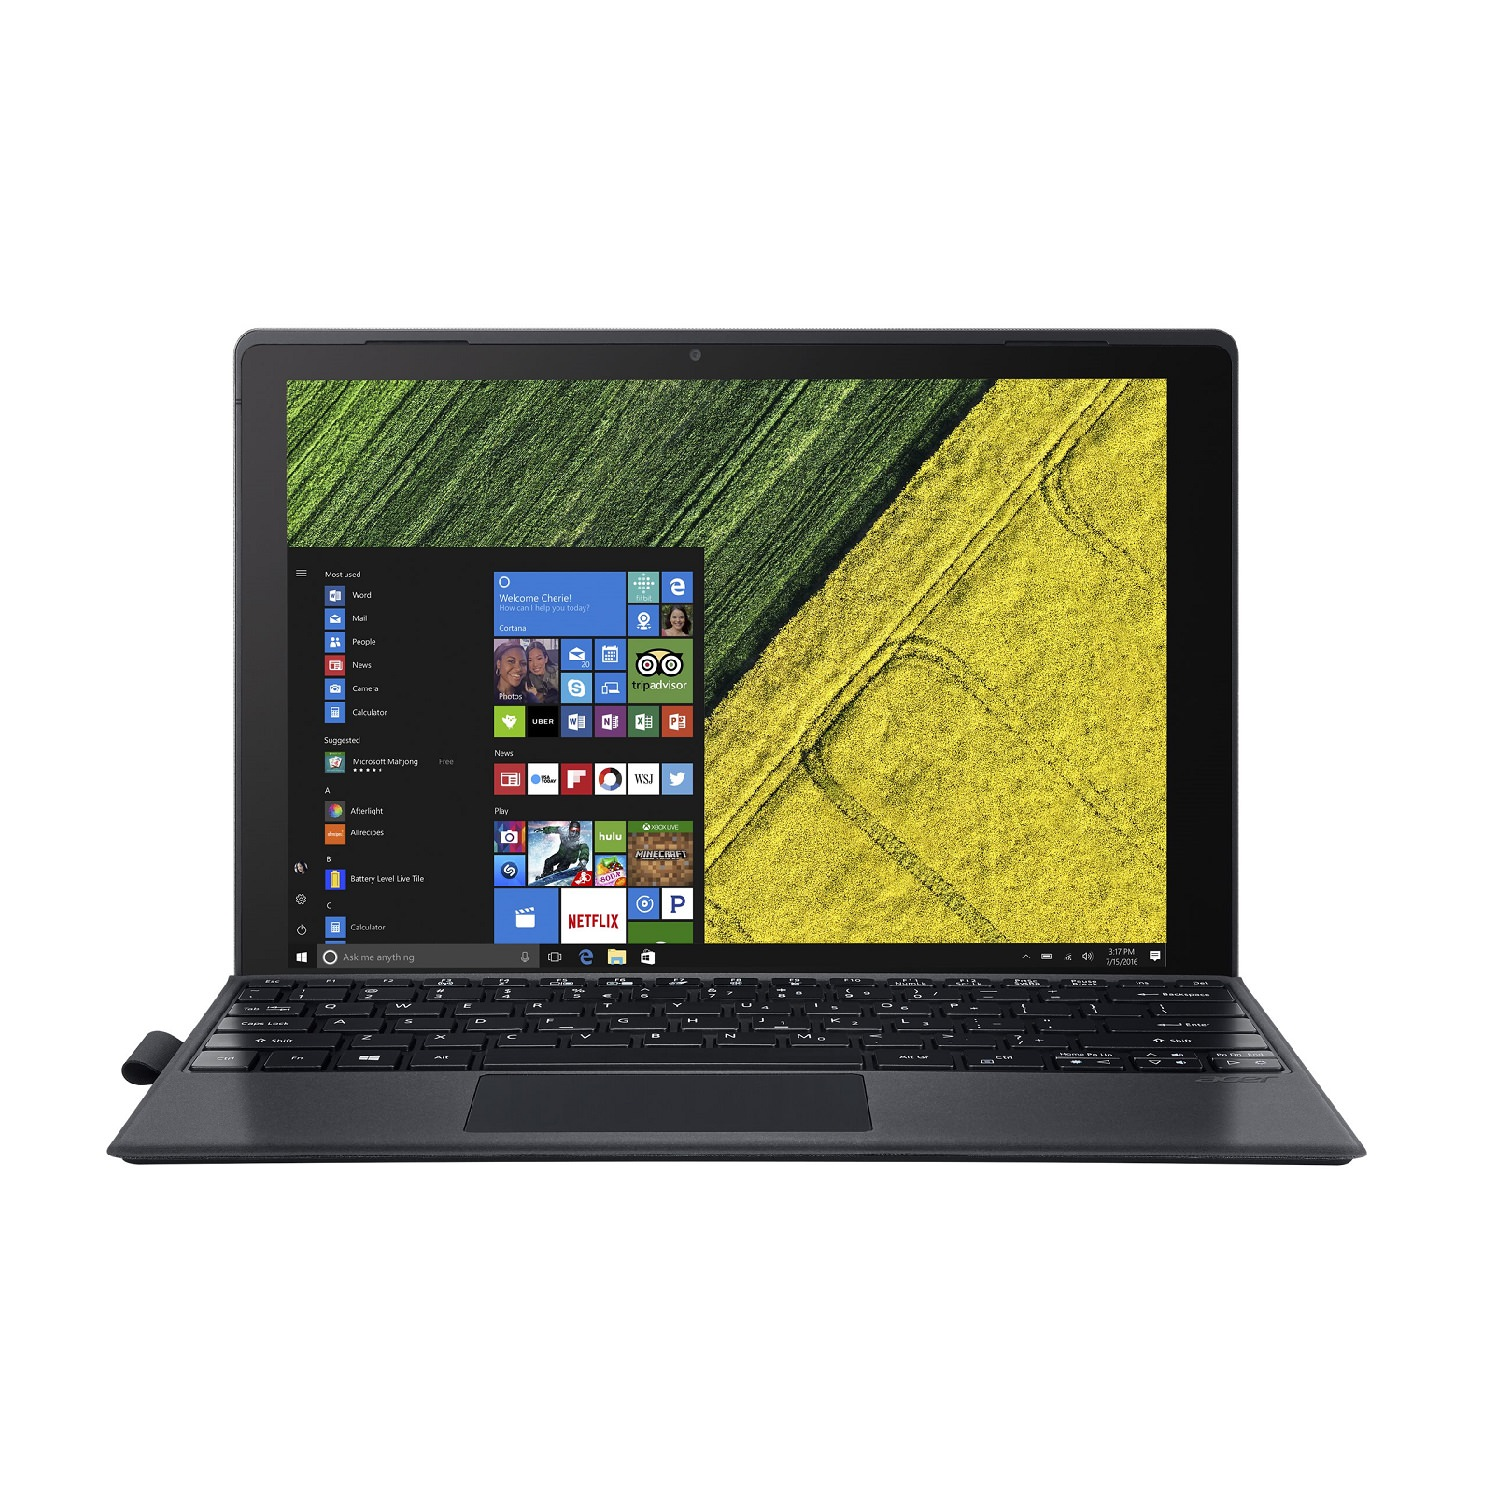 Acer Switch 5 2-in-1 Notebook with Intel i7-7200U, 8GB 256GB SSD by Acer